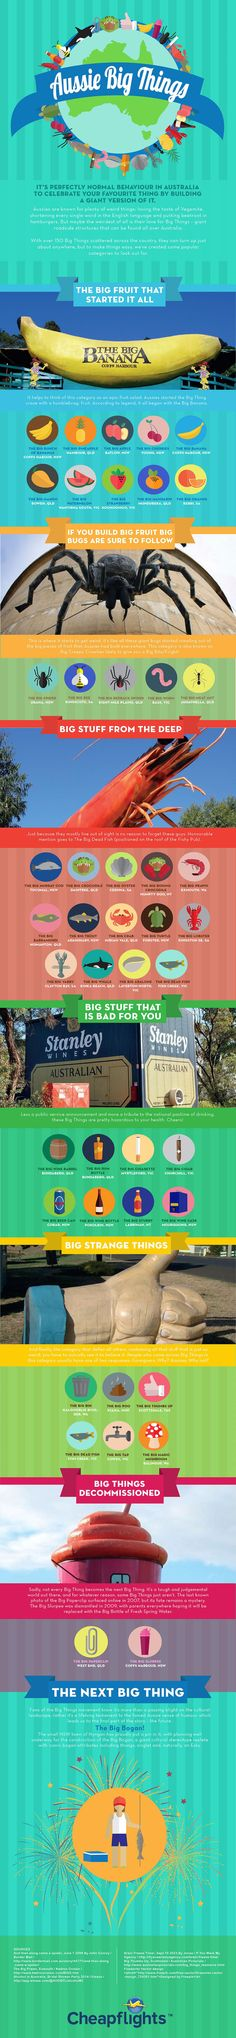 [INFOGRAPHIC] Australia's Big Things: Icons Of A National Obsession. From the Big Banana to the Big Lobster, these big things have become a roadside cult phenomenon in Australia. Read more here - http://www.backtobuckley.com/australias-big-things-icons-of-a-national-obsession/